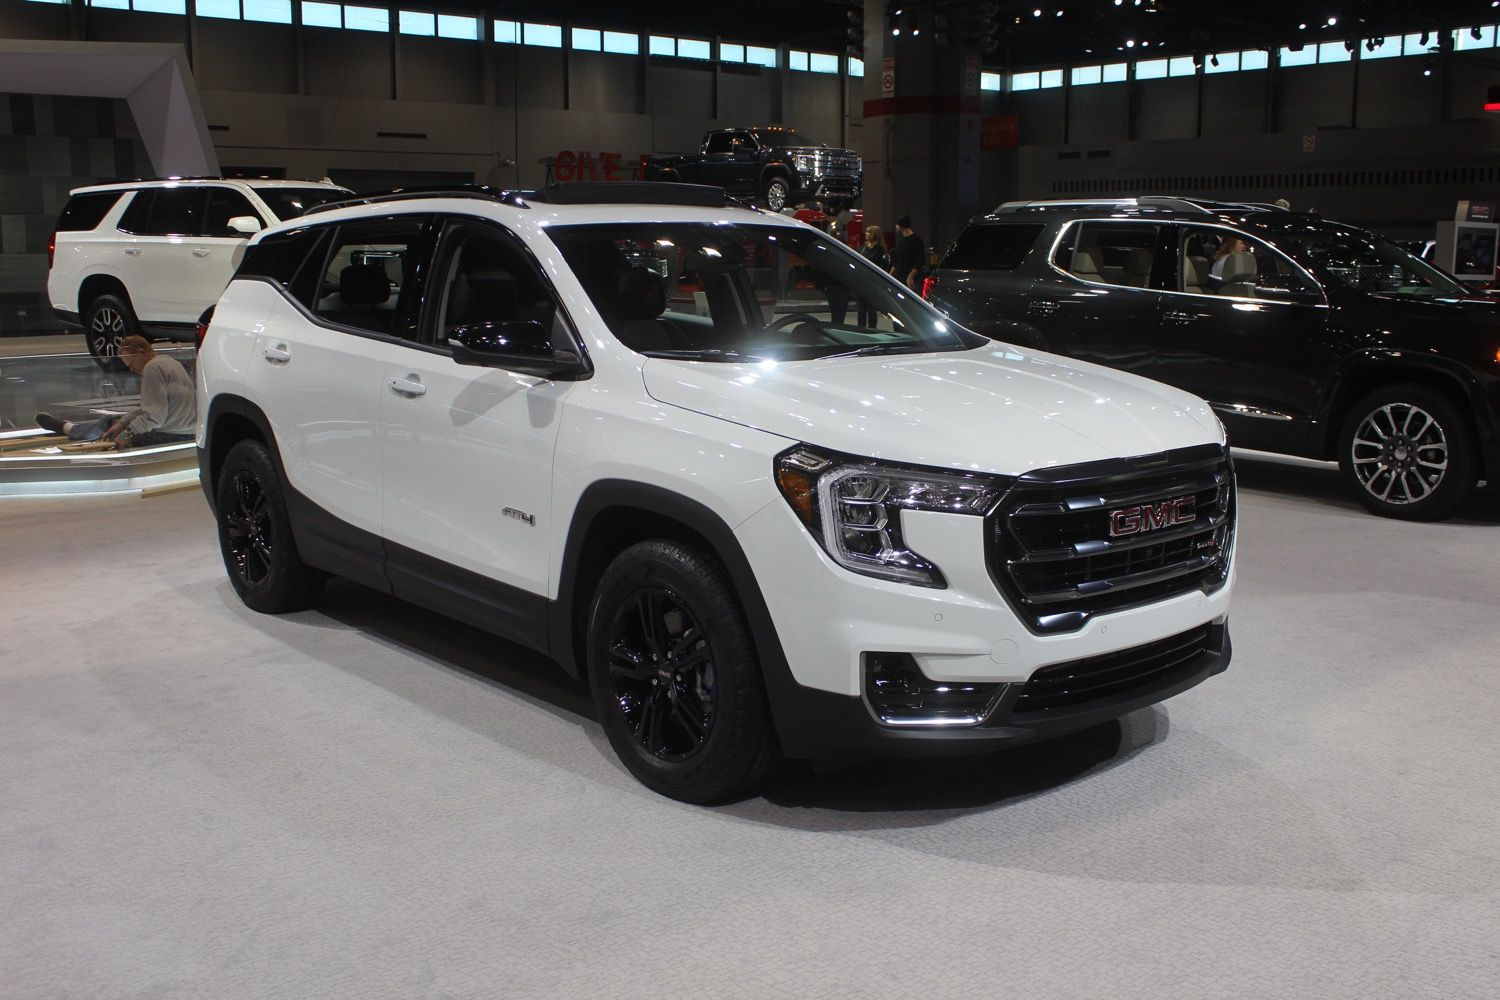 2021 Gmc Terrain Review Trims Features Updates Performance And Rivals Compared